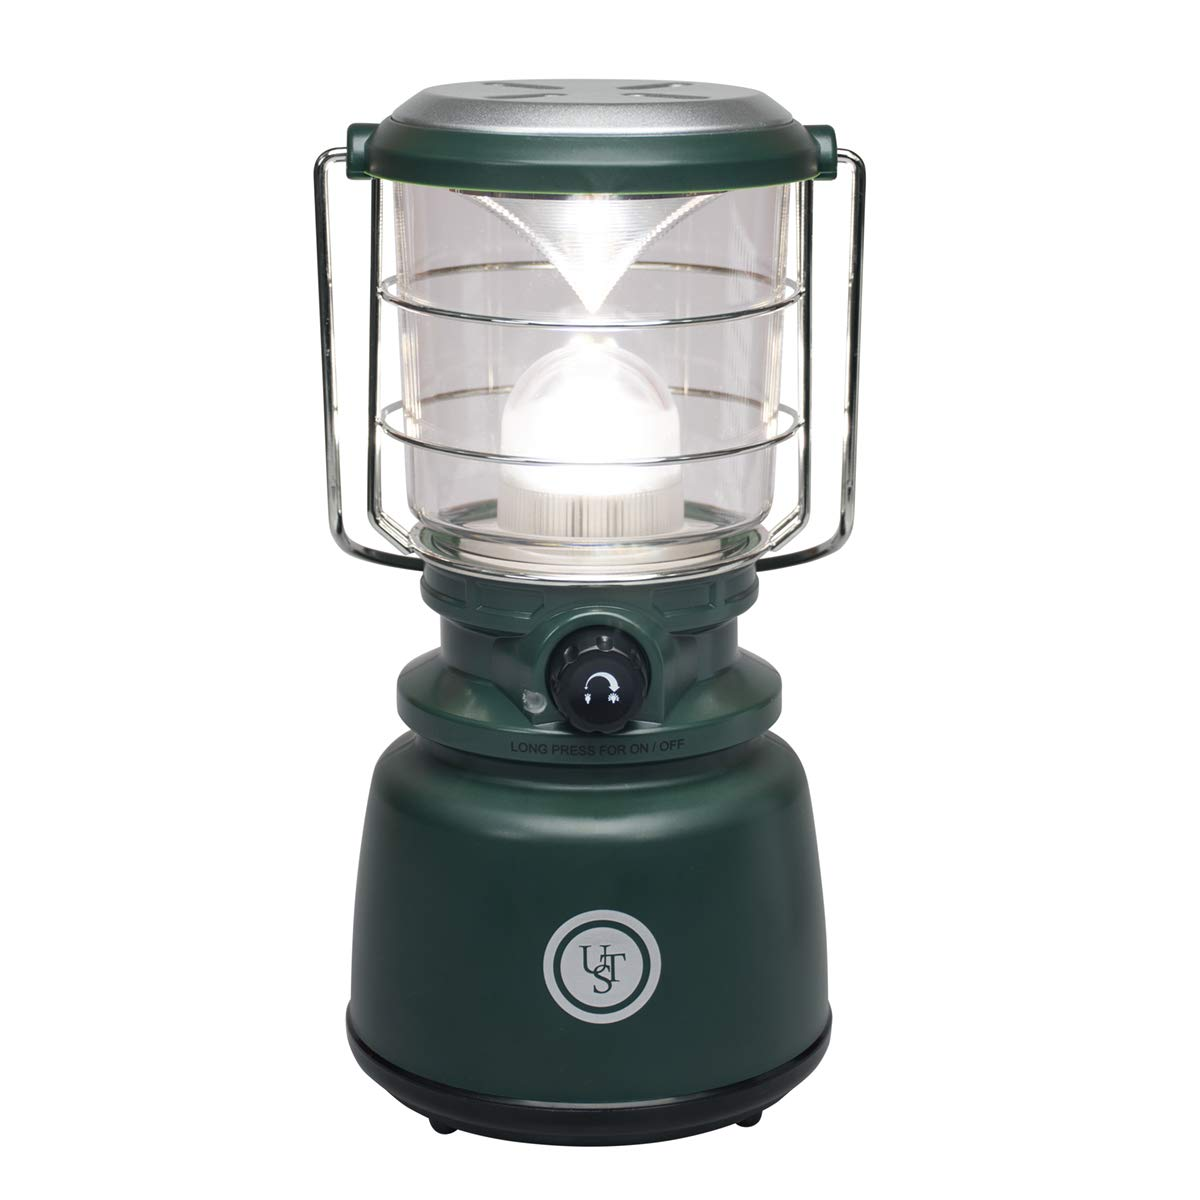 UST Heritage Camp 1,000 Lumen Water Resistant Lantern with Dimmer Switch and Hook for Camping, Hiking, Emergency and Outdoor Survival